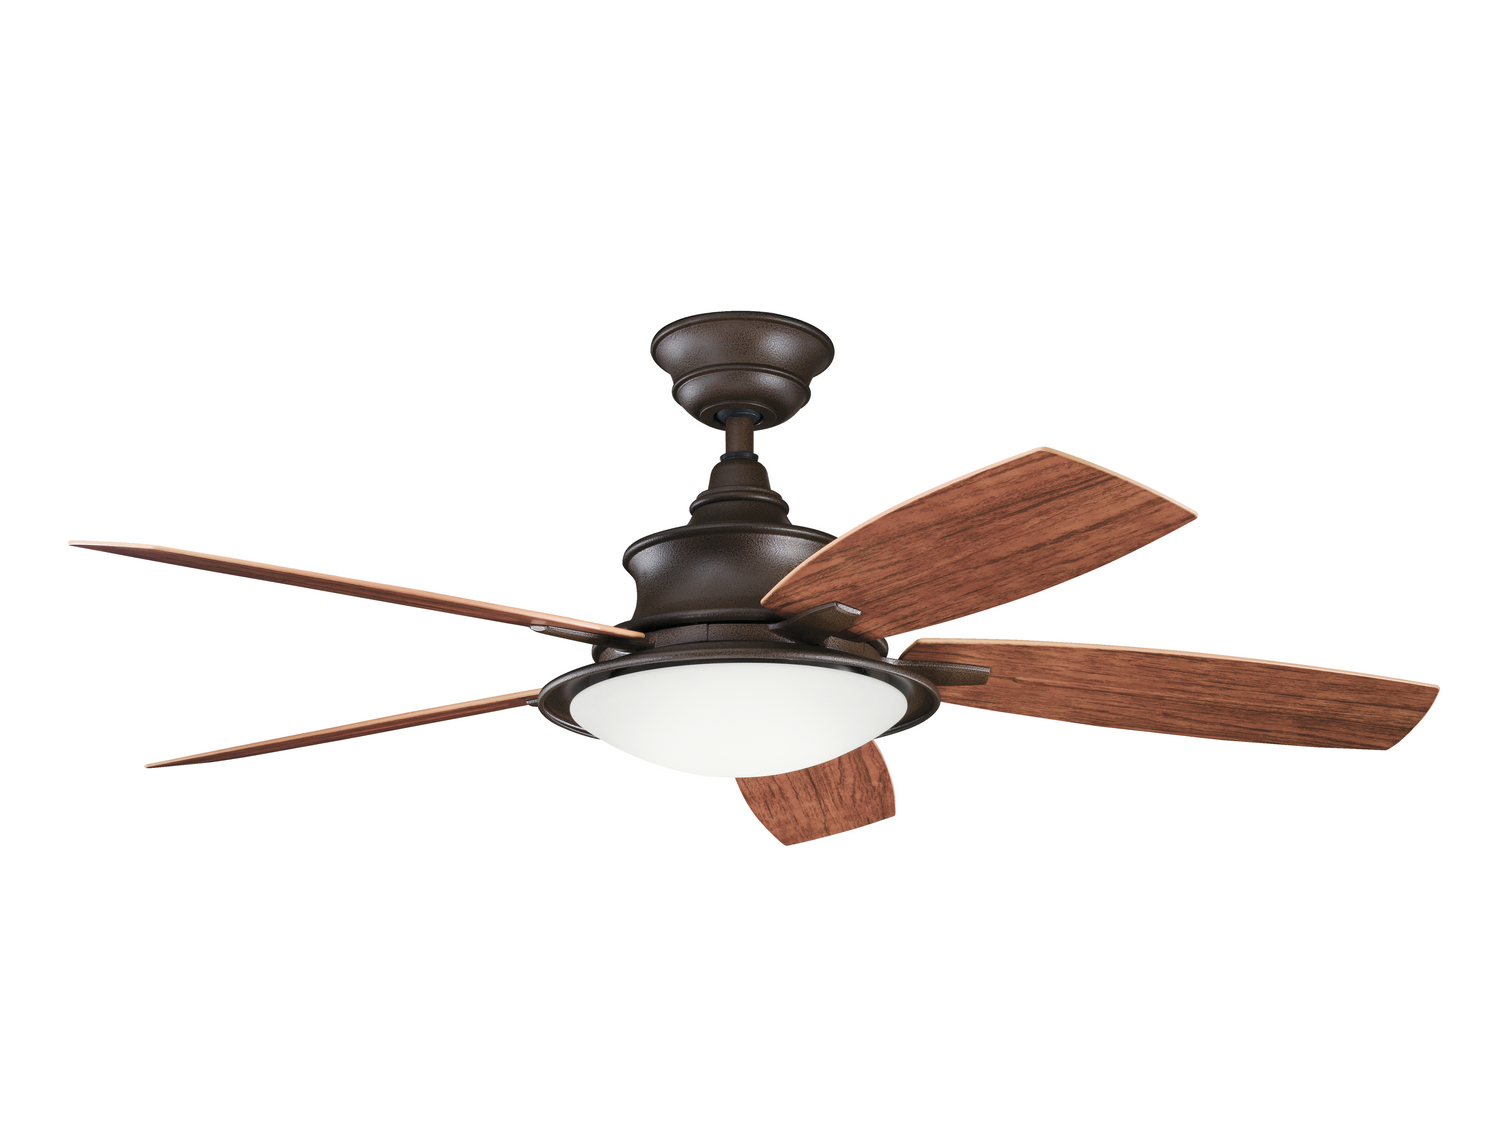 52 inchCeiling Fan from the Cameron collection by Kichler 310104TZP